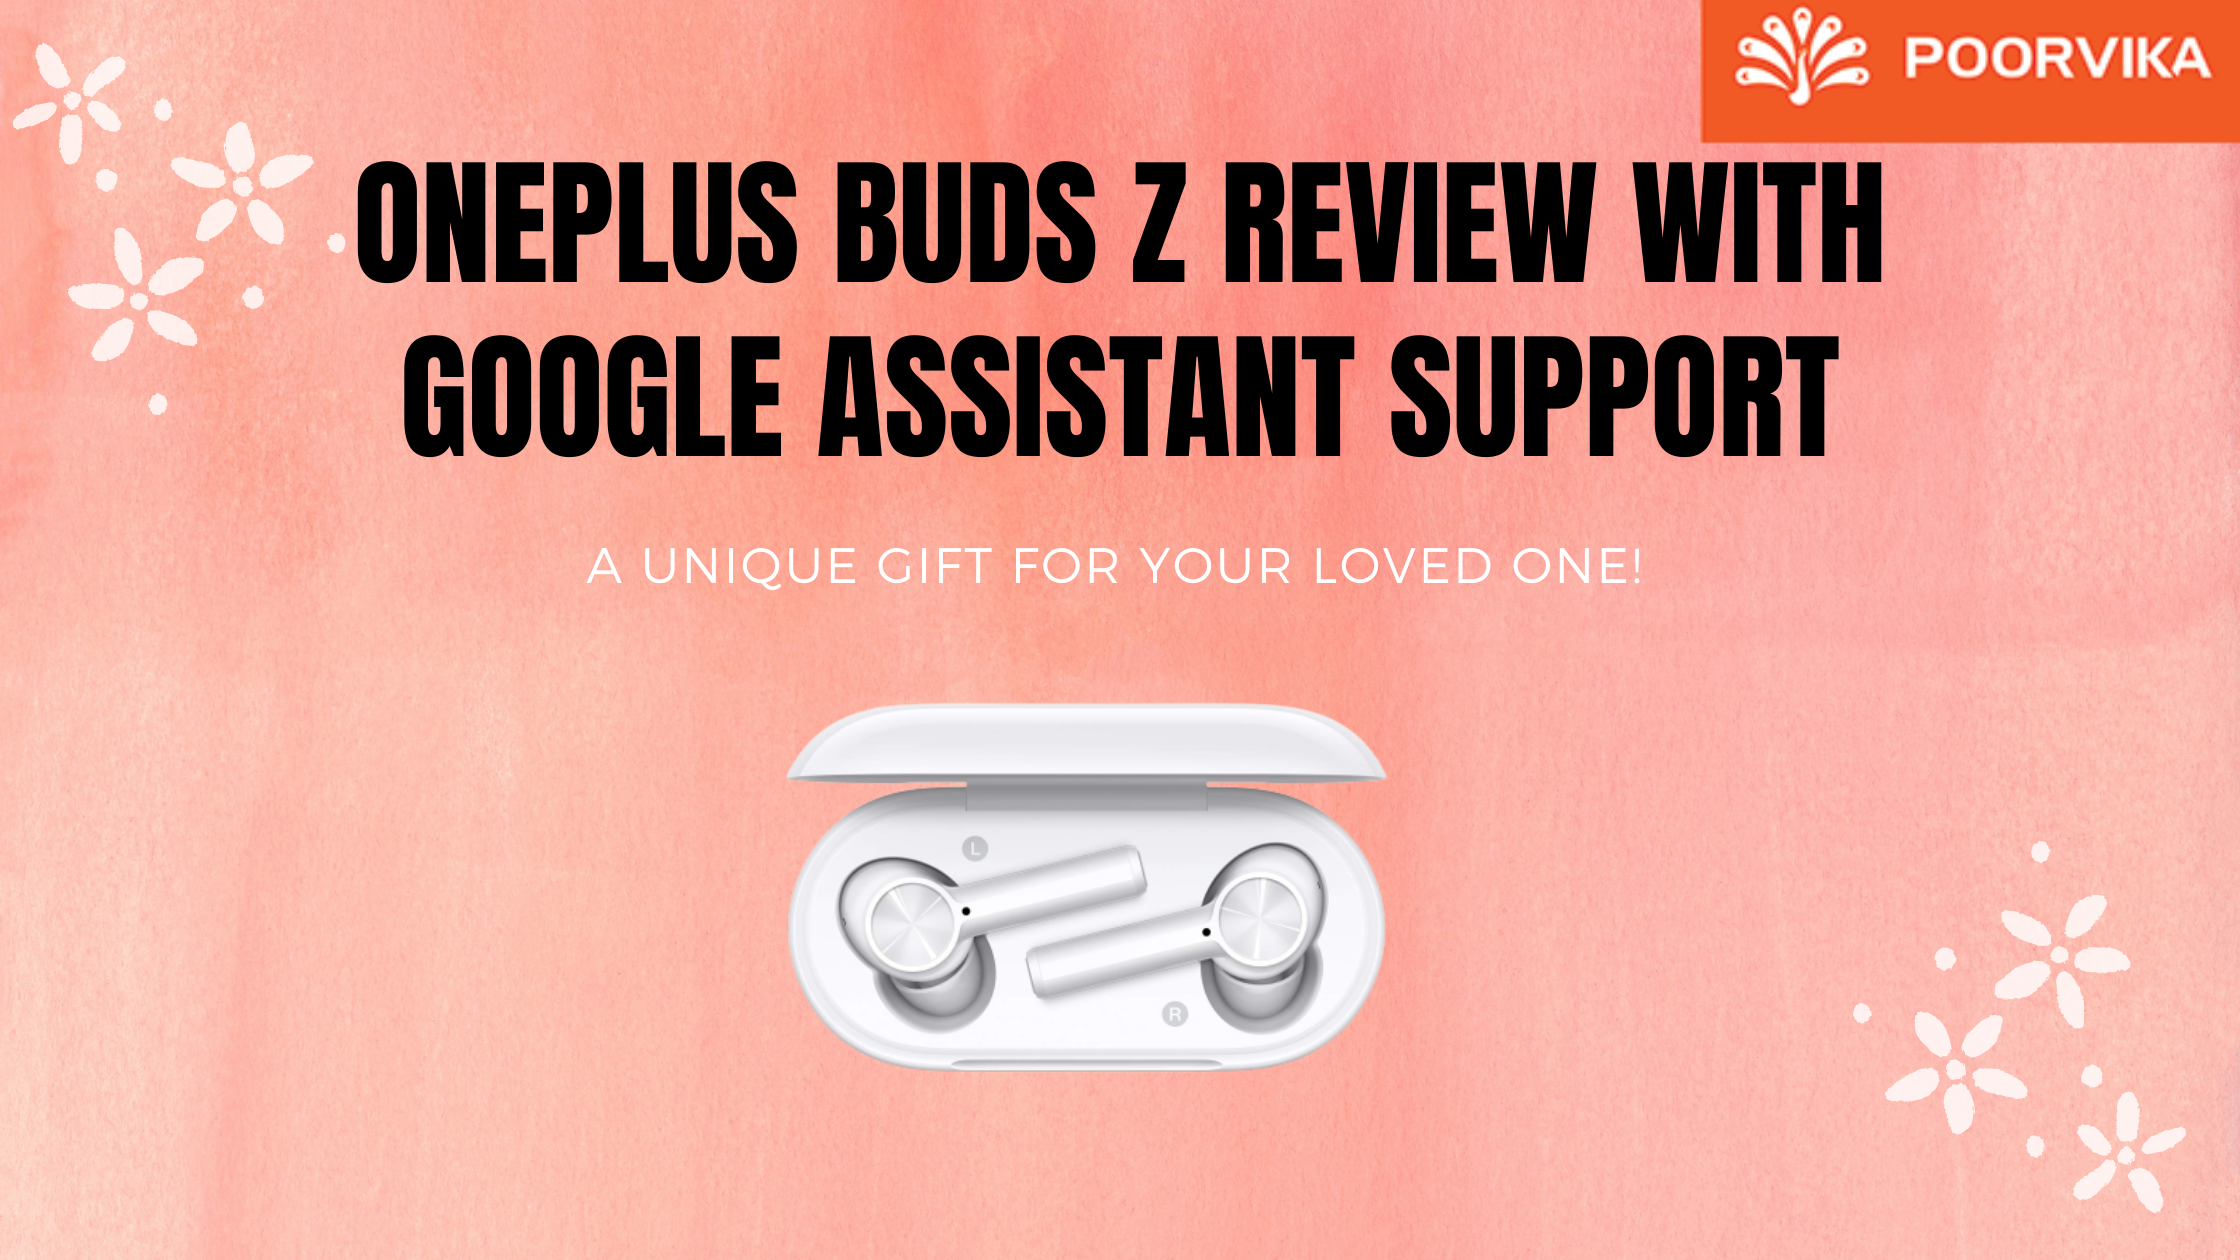 ONEPLUS BUDS Z REVIEW WITH GOOGLE ASSISTANT SUPPORT